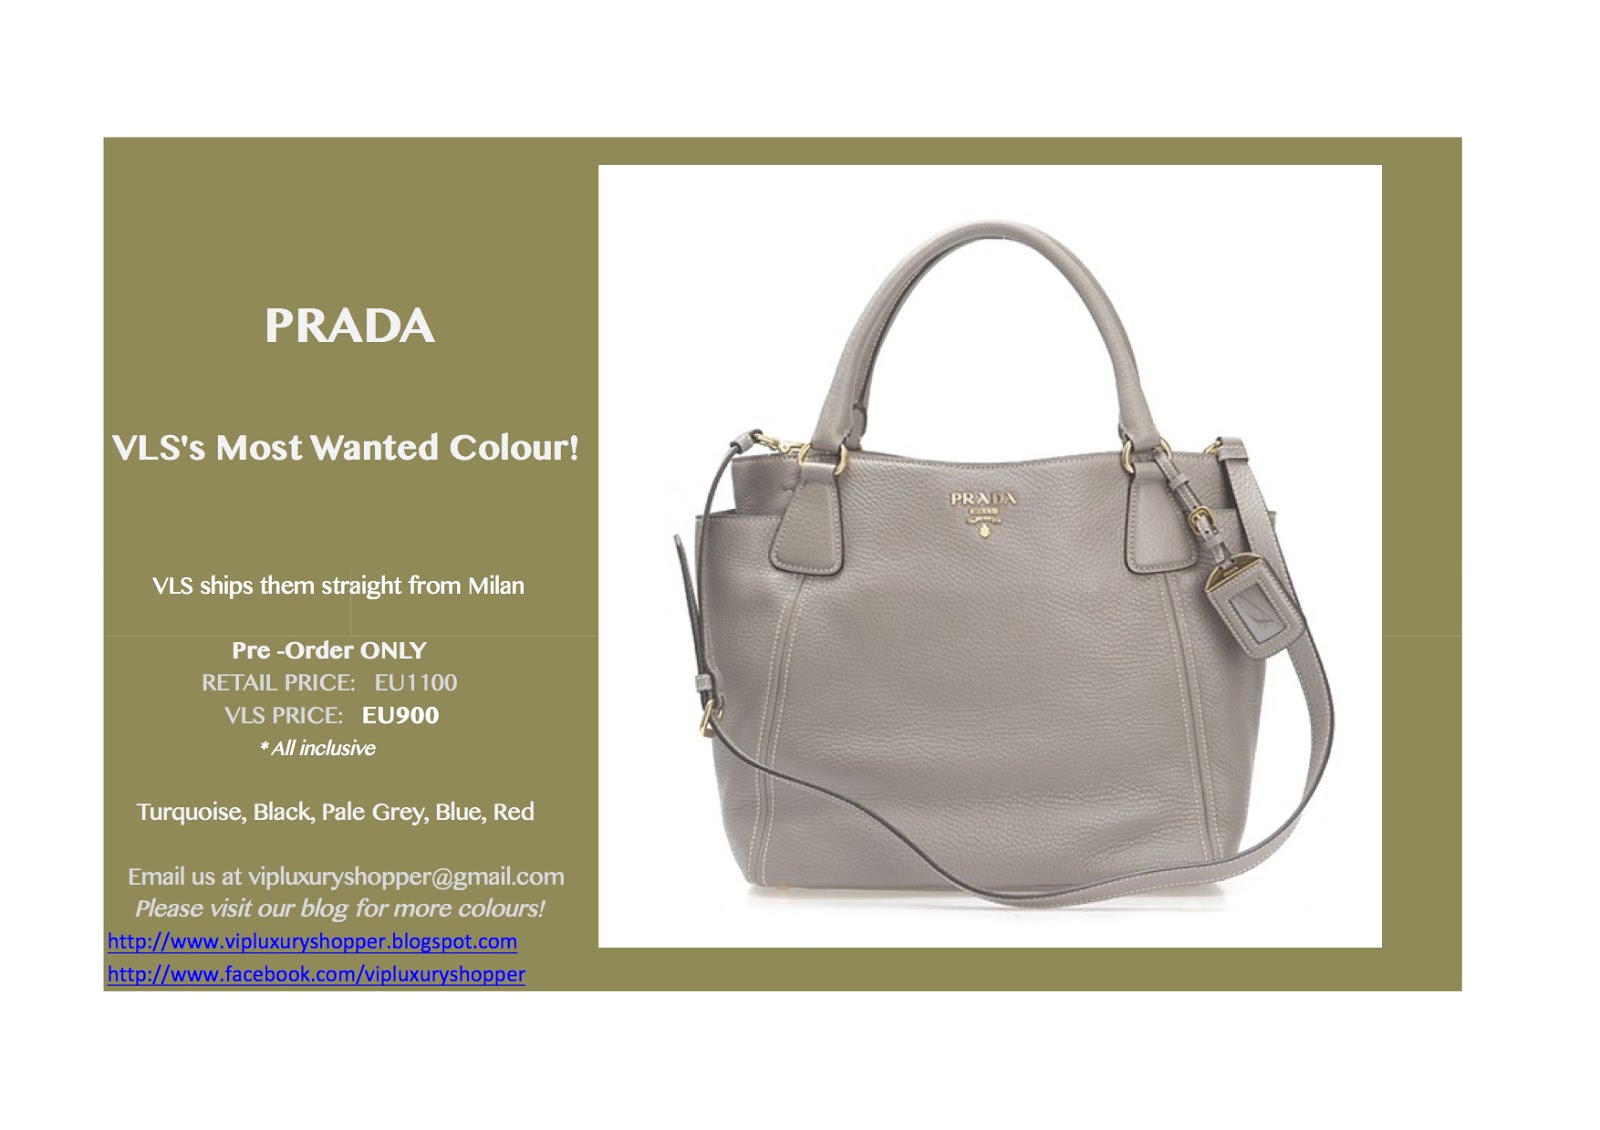 fce735bbd8d637 VLS is offering PRADA at a VERY affordable price. Please email us at  vipluxuryshopper@gmail.com for more details. We might make you a better  deal via email!